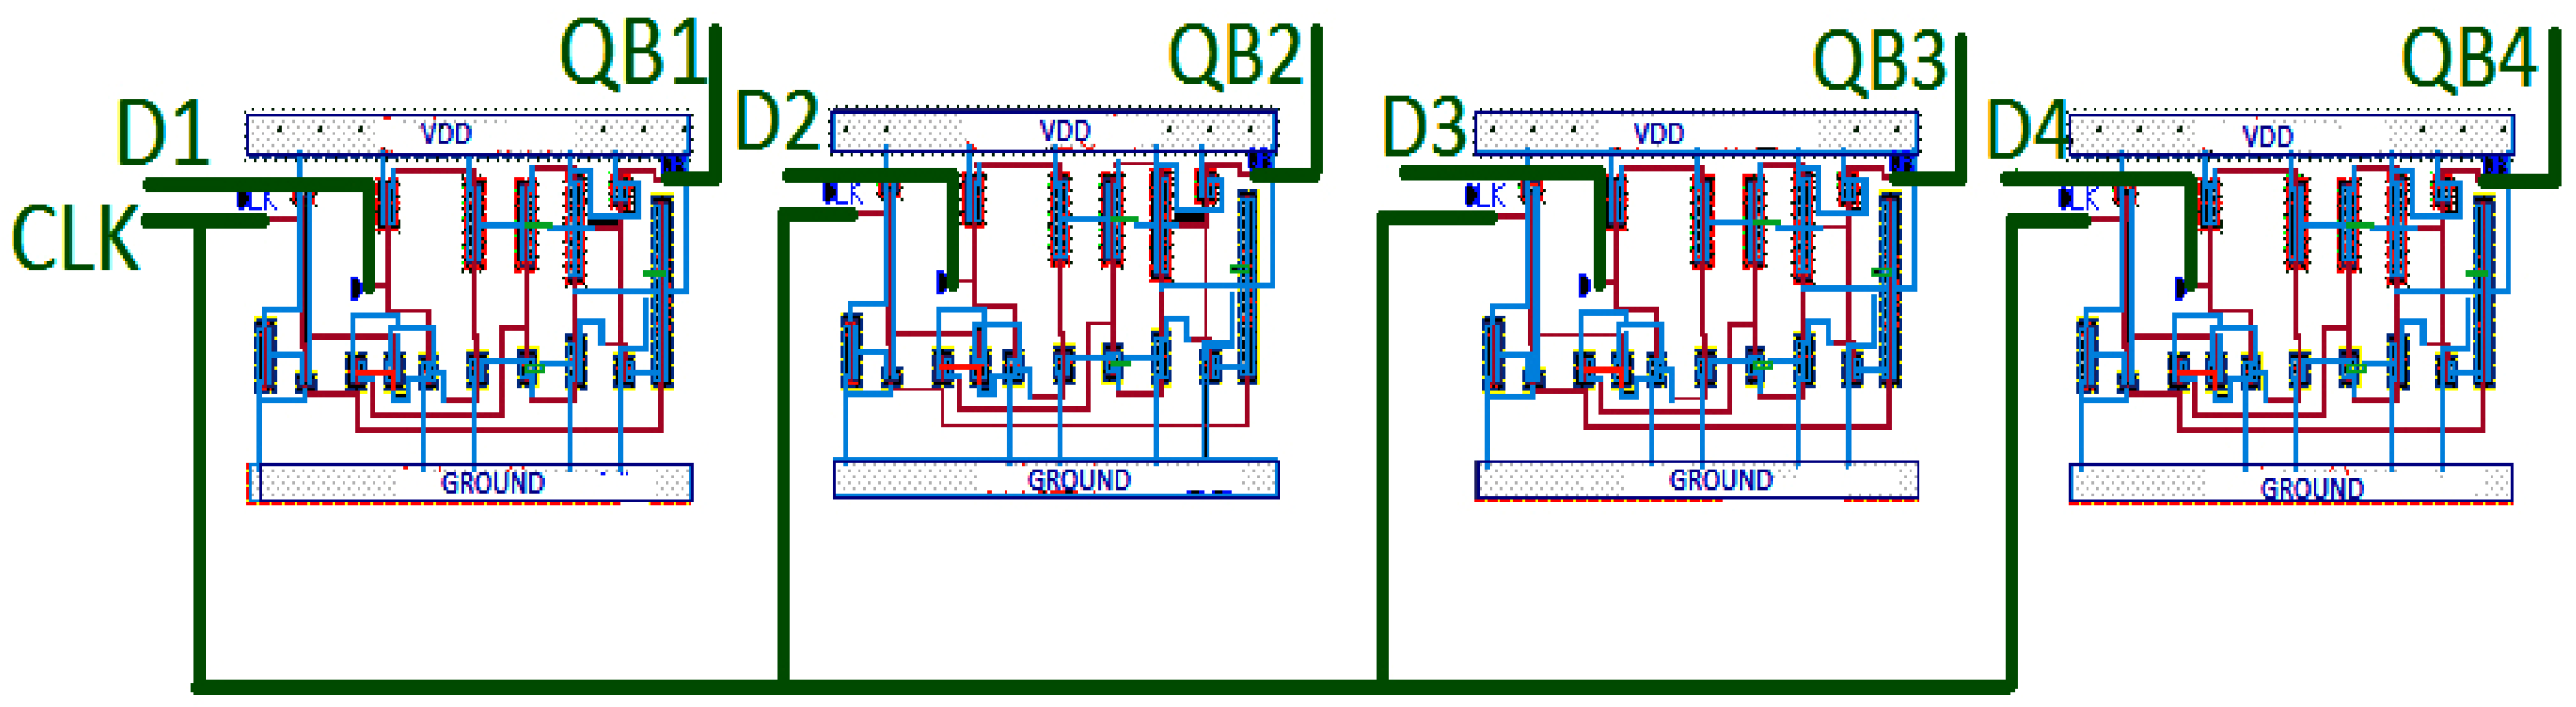 Electronics Free Full Text Low Power High Efficiency Shift Circuit Diagram Of D Flip Flop 05 00092 G015